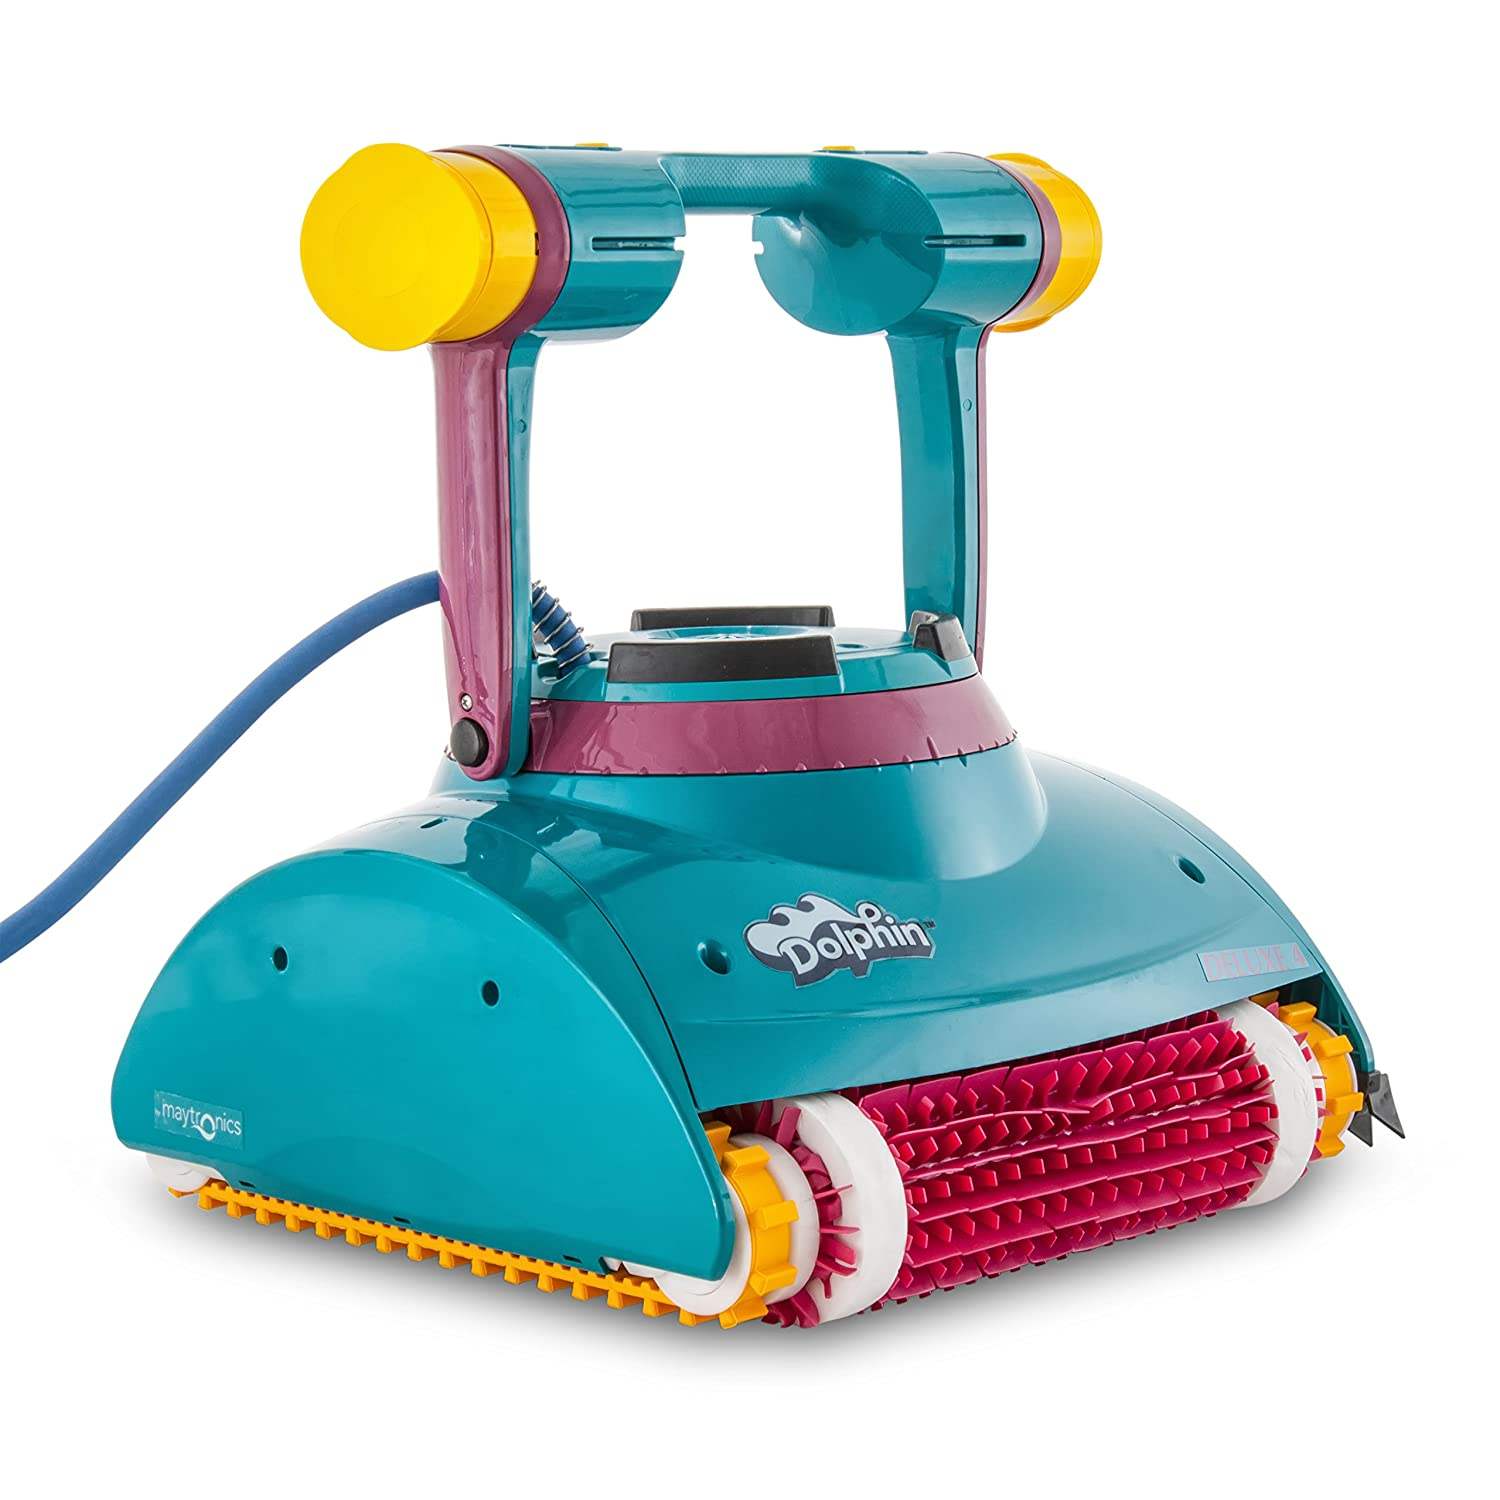 Dolphin Deluxe 4 Robotic Pool Cleaner